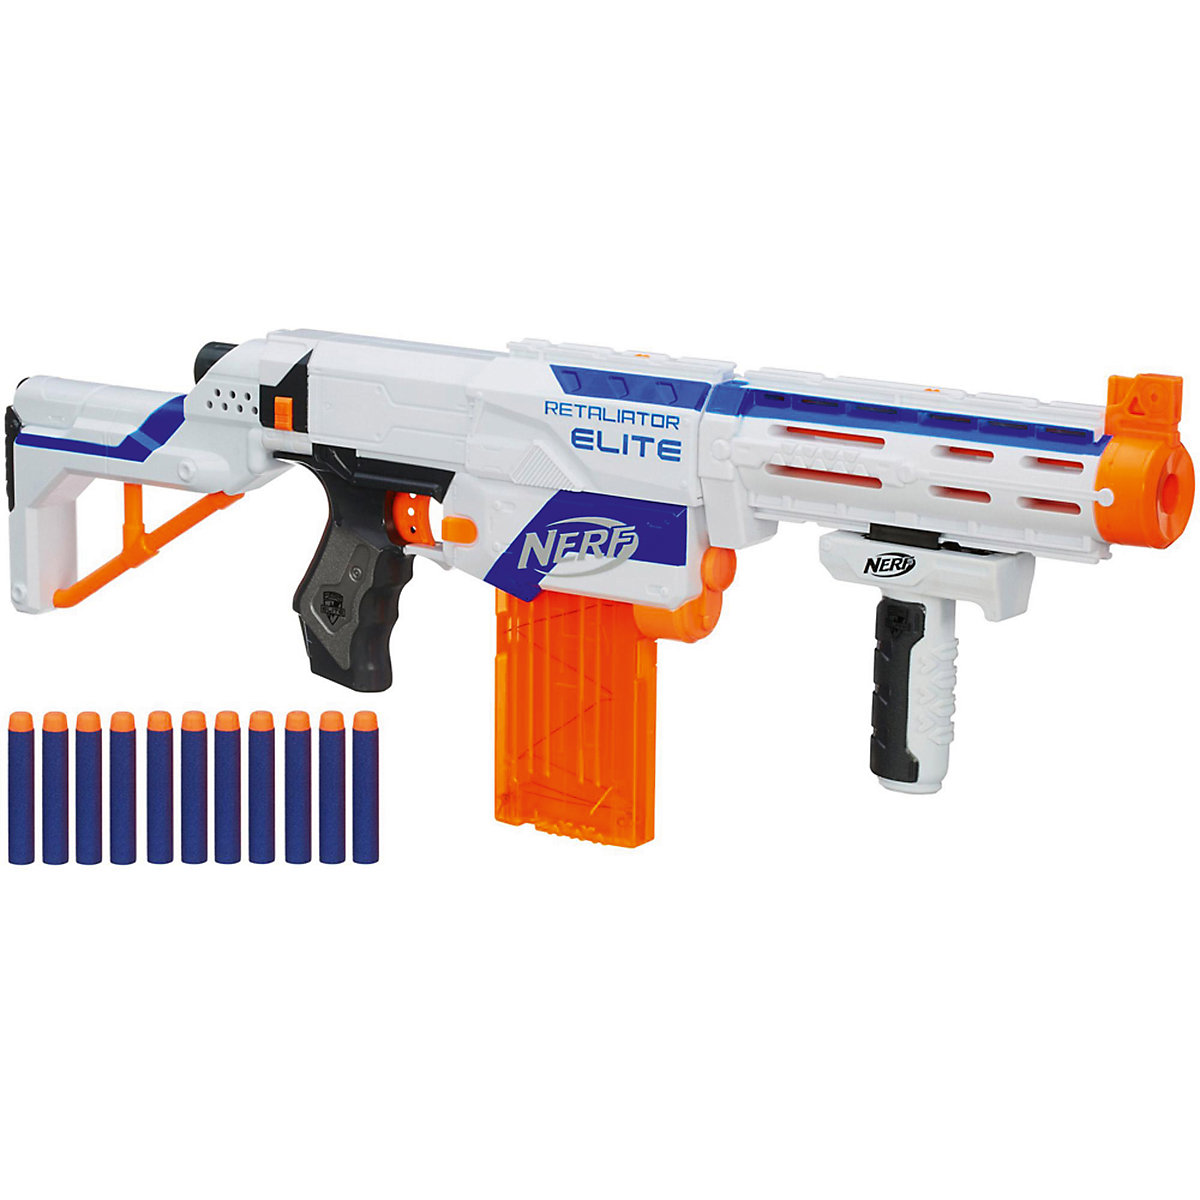 Toy Guns NERF 7136449 Children Kids Toy Gun Weapon Blasters Boys Shooting games Outdoor play new summer water sports baby kids inflatable swimming pool pvc portable swim family play pool children bath tub kids toy